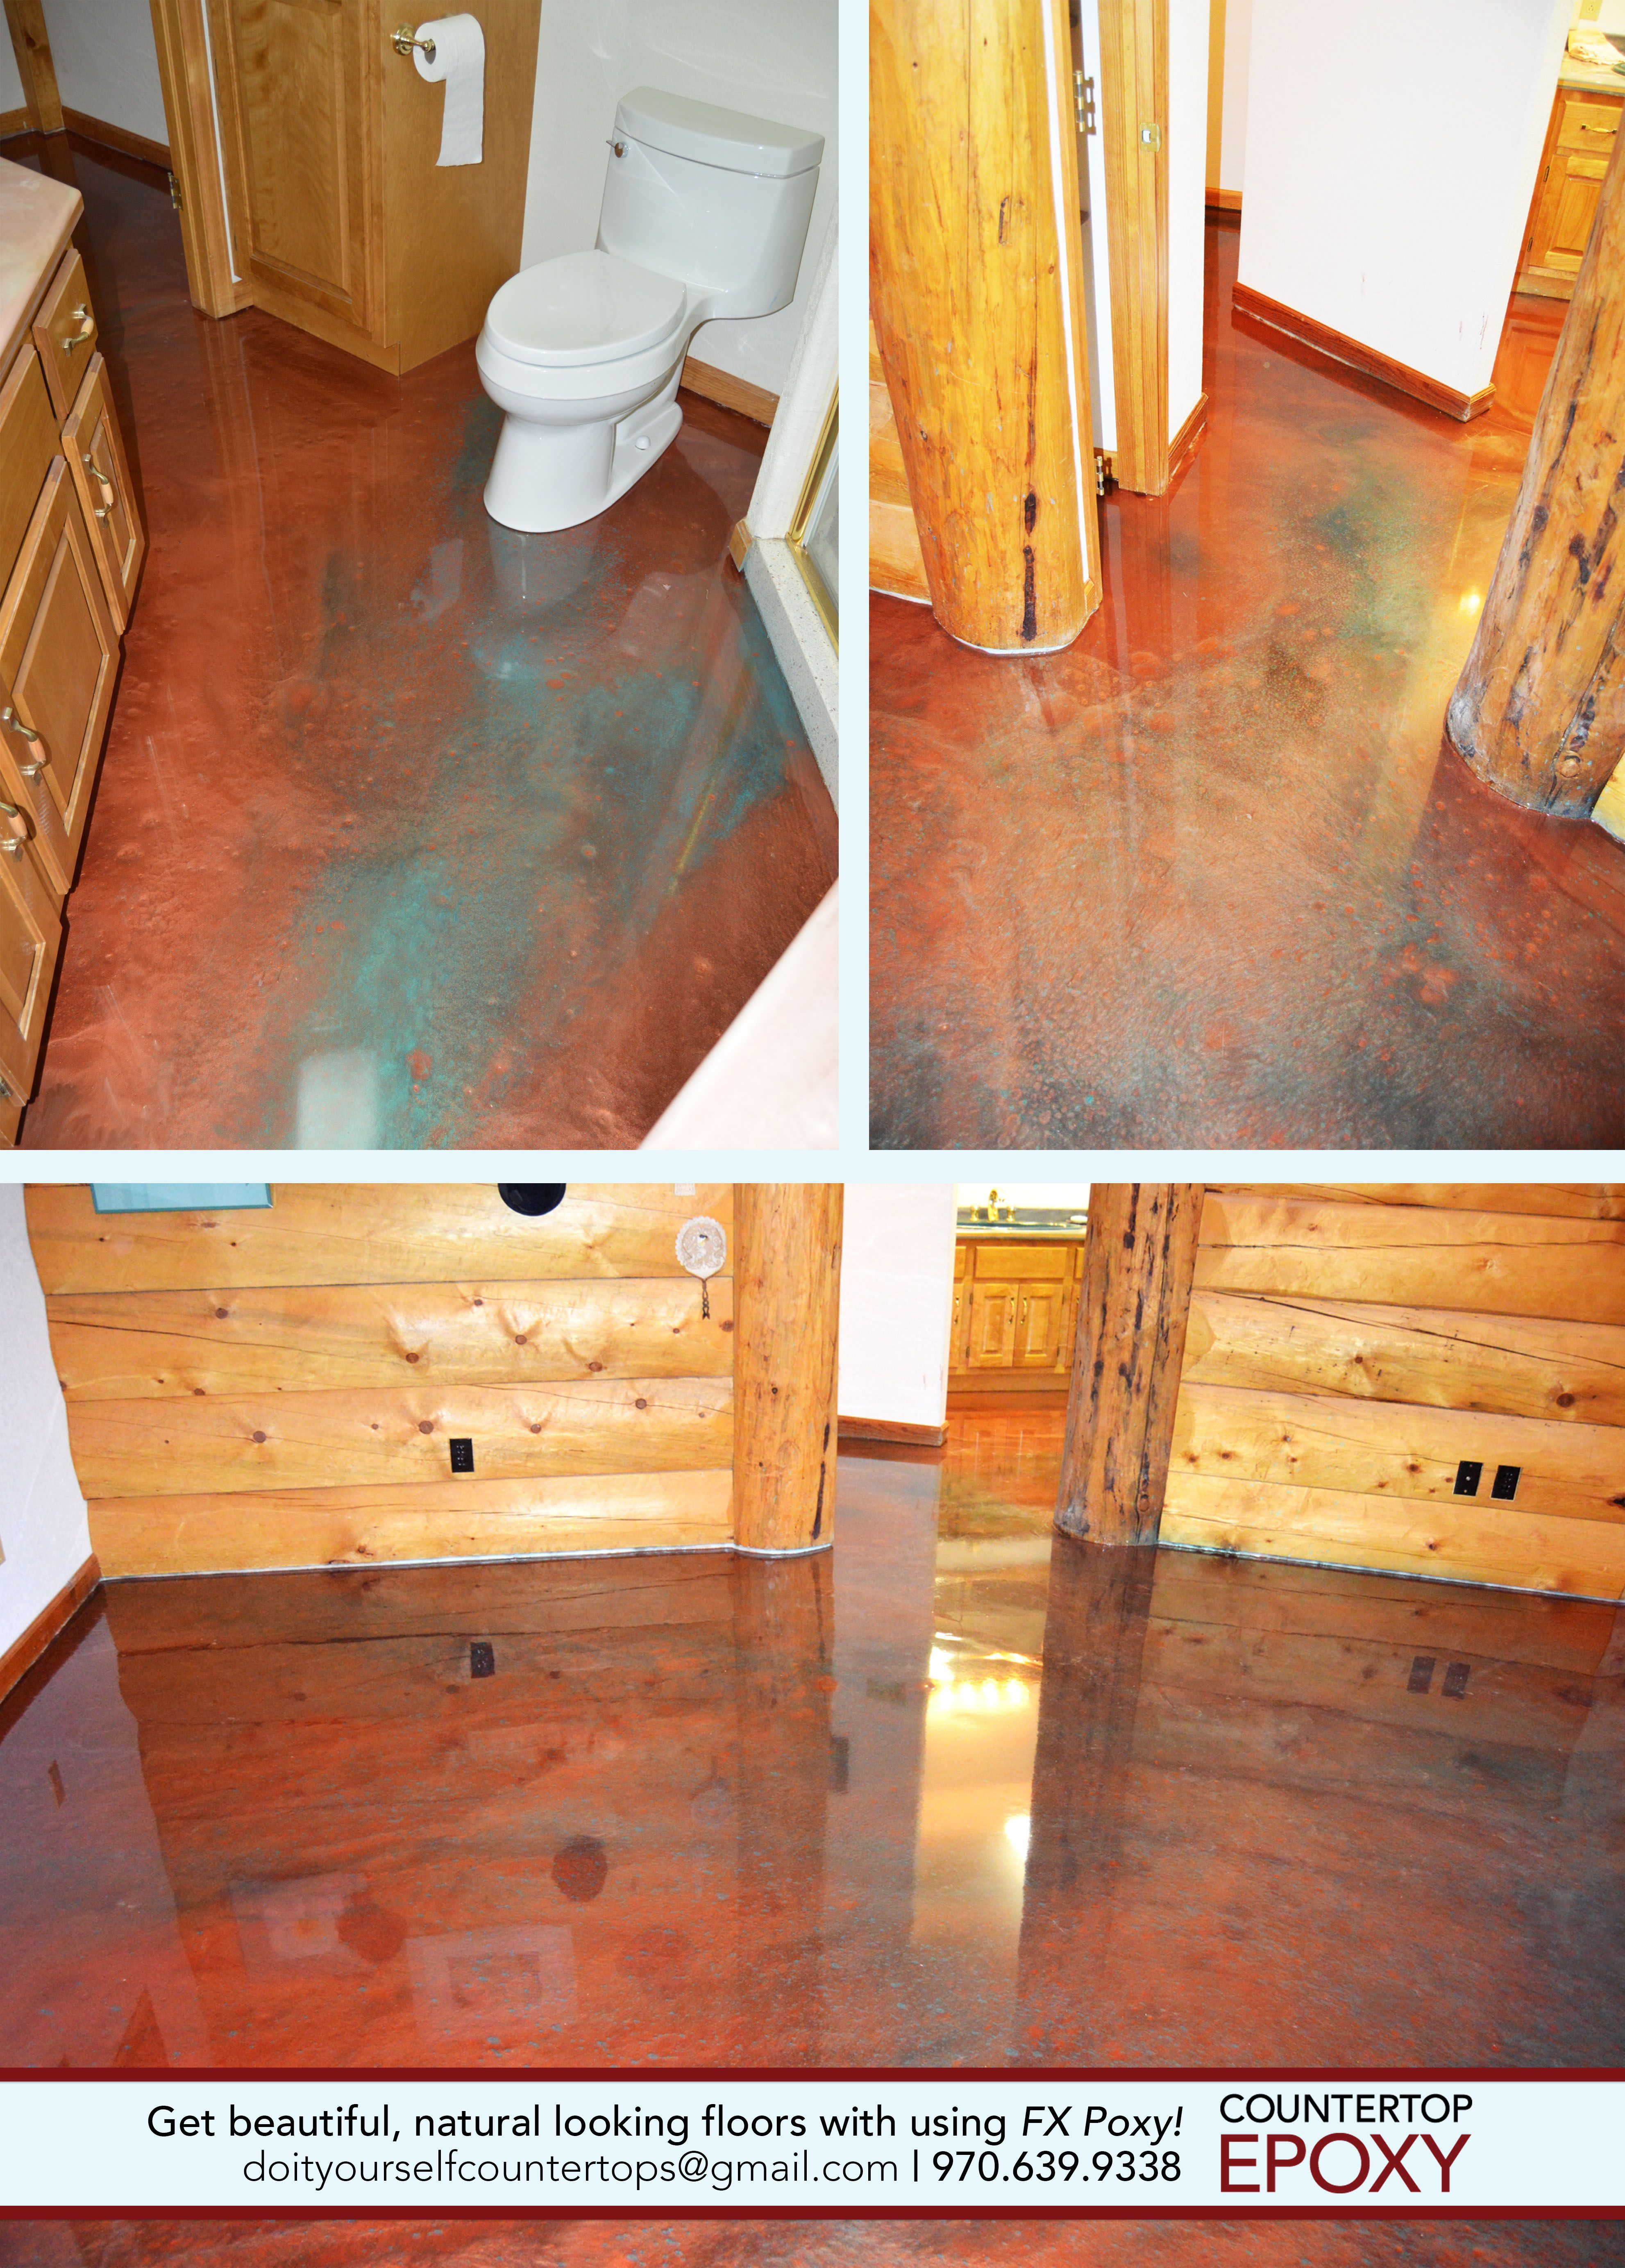 Copper Patina Fx Poxy In A Log Cabin Get The Look Of Real